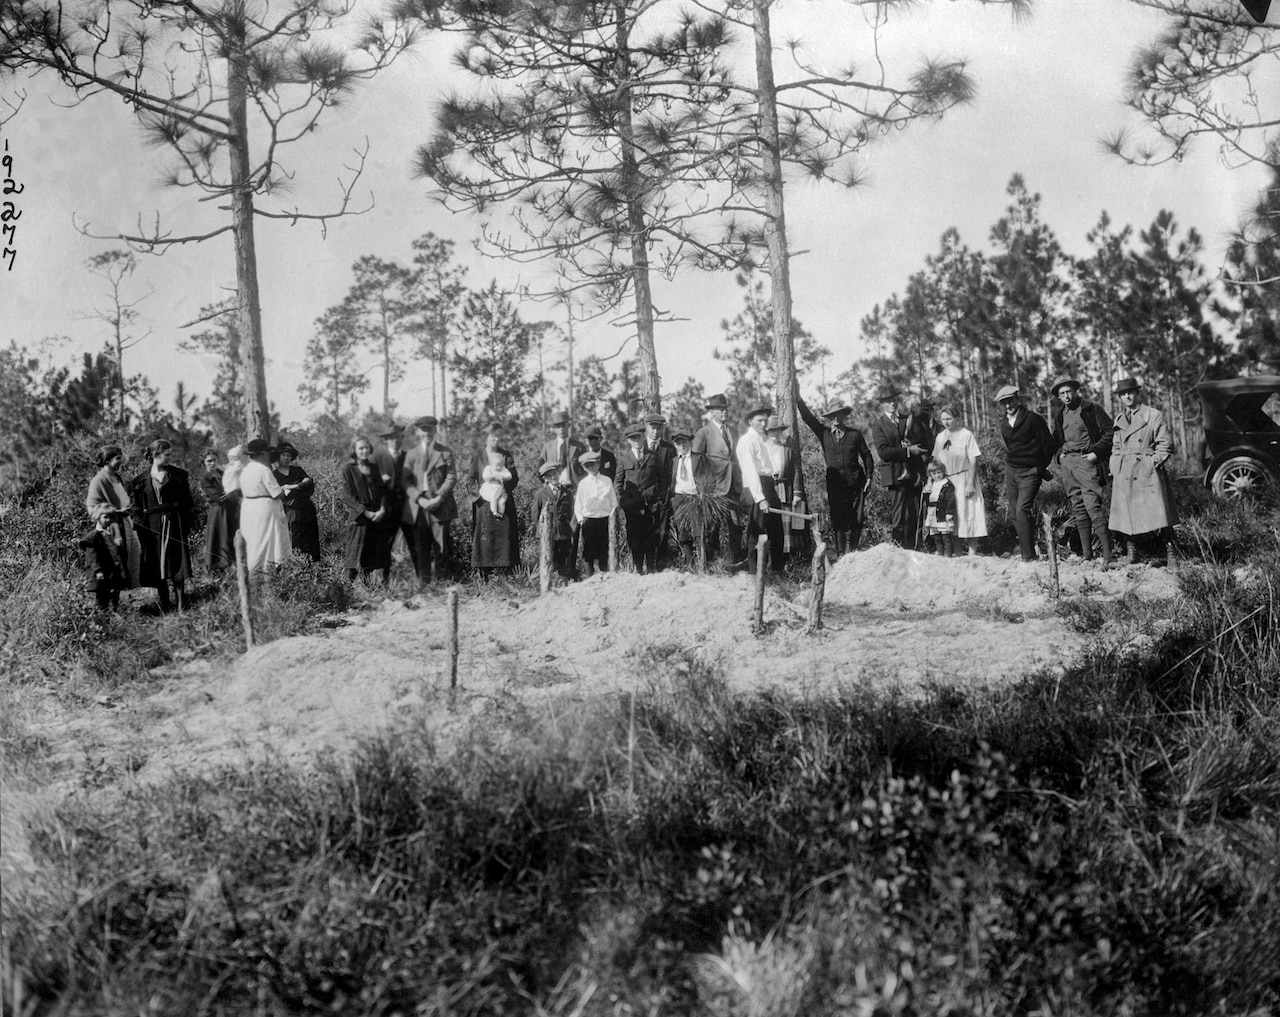 a grave site with a crowd of white people standing around it